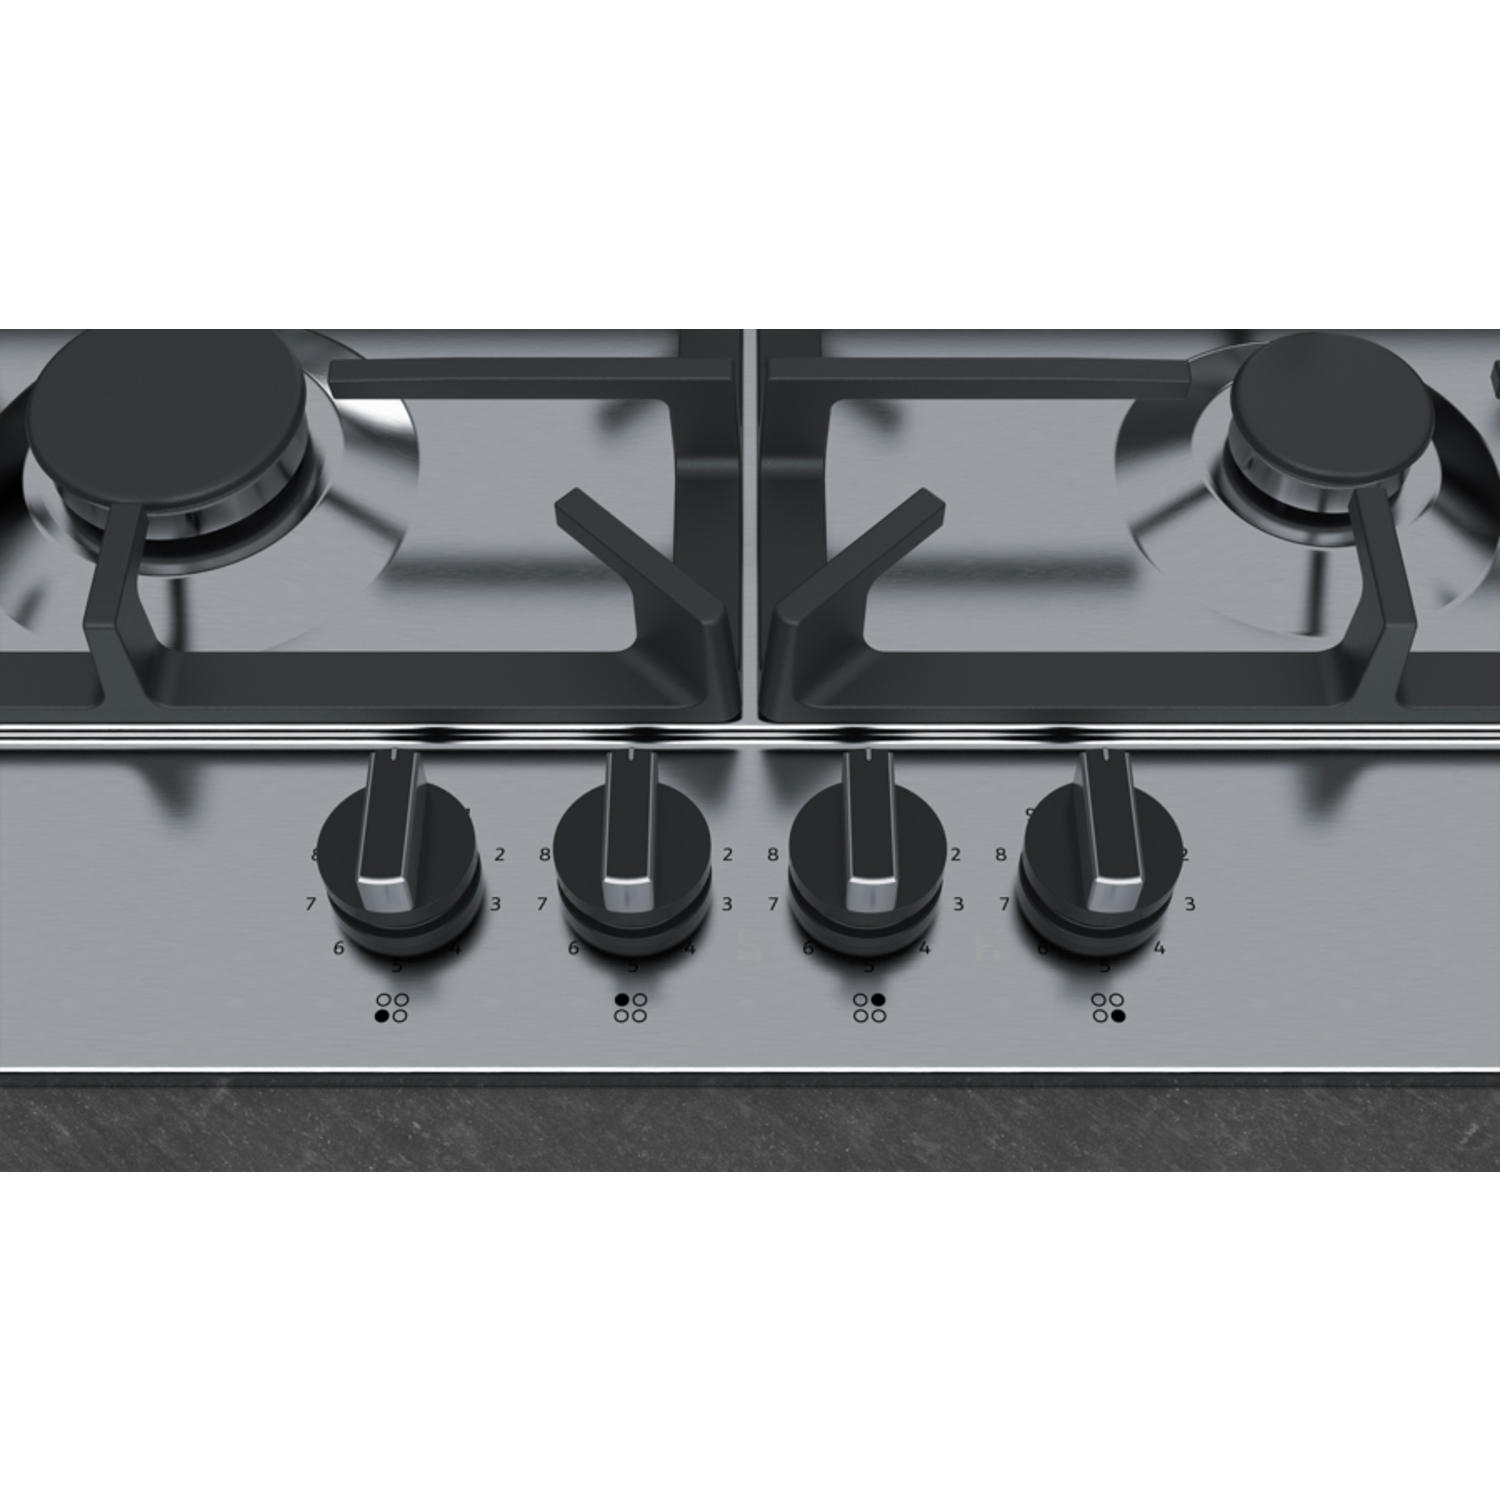 Neff 58cm Gas Hob - Stainless Steel - 3